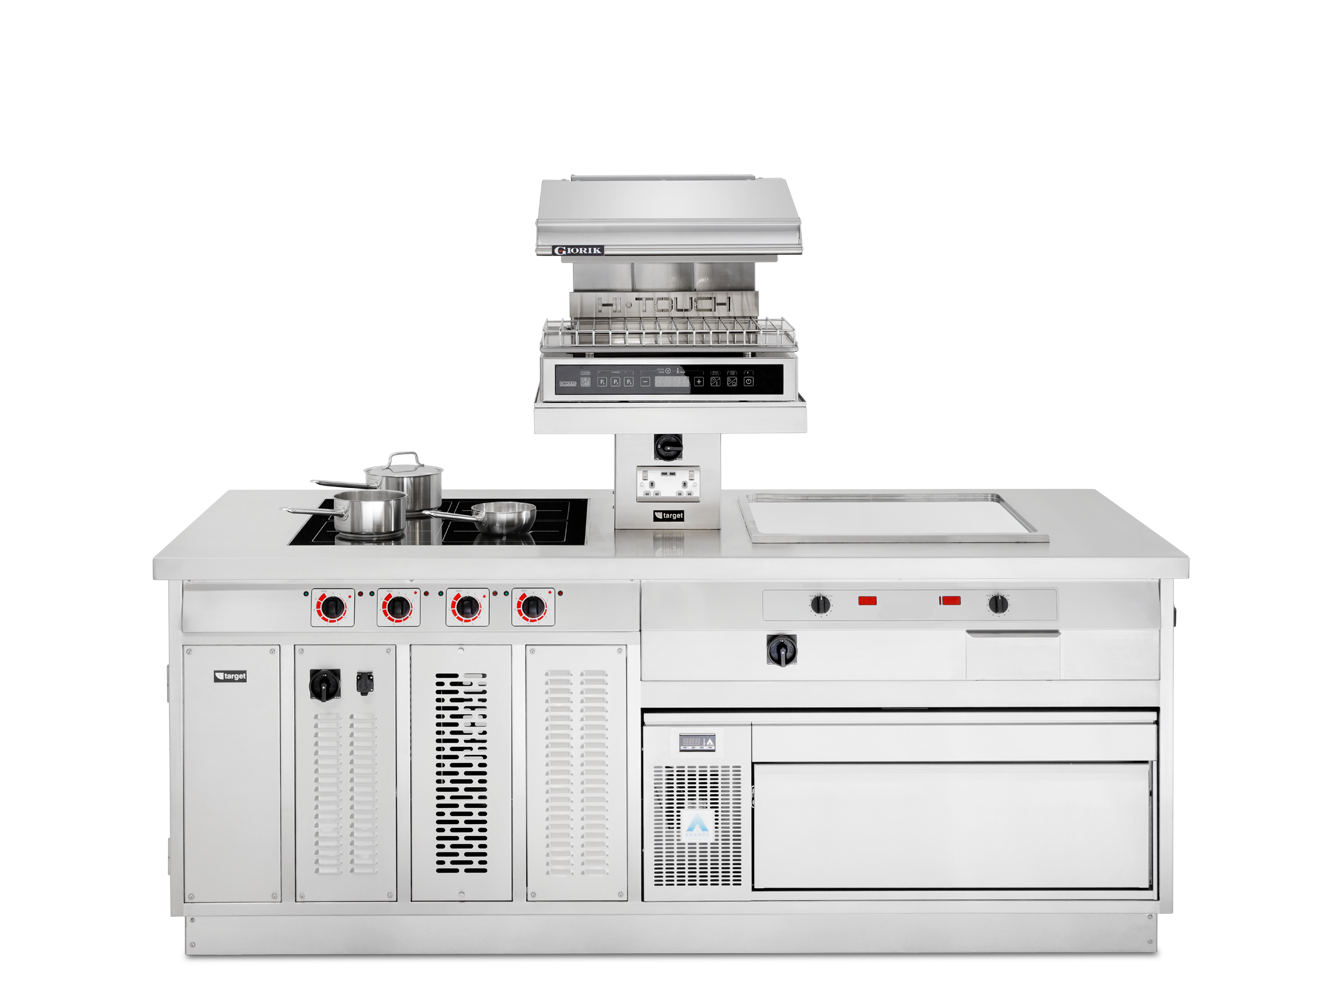 commercial-induction-range-island-with-induction-plancha-grill-refrigeration.png